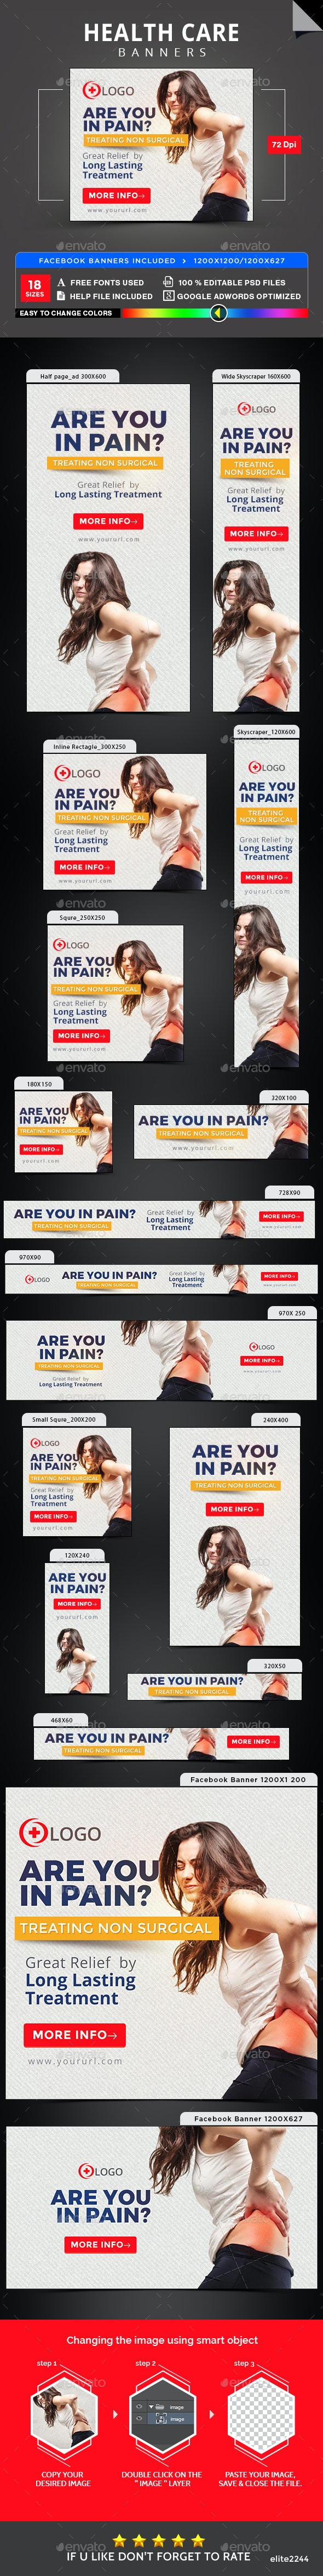 Health Care Banners - Banners & Ads Web Elements